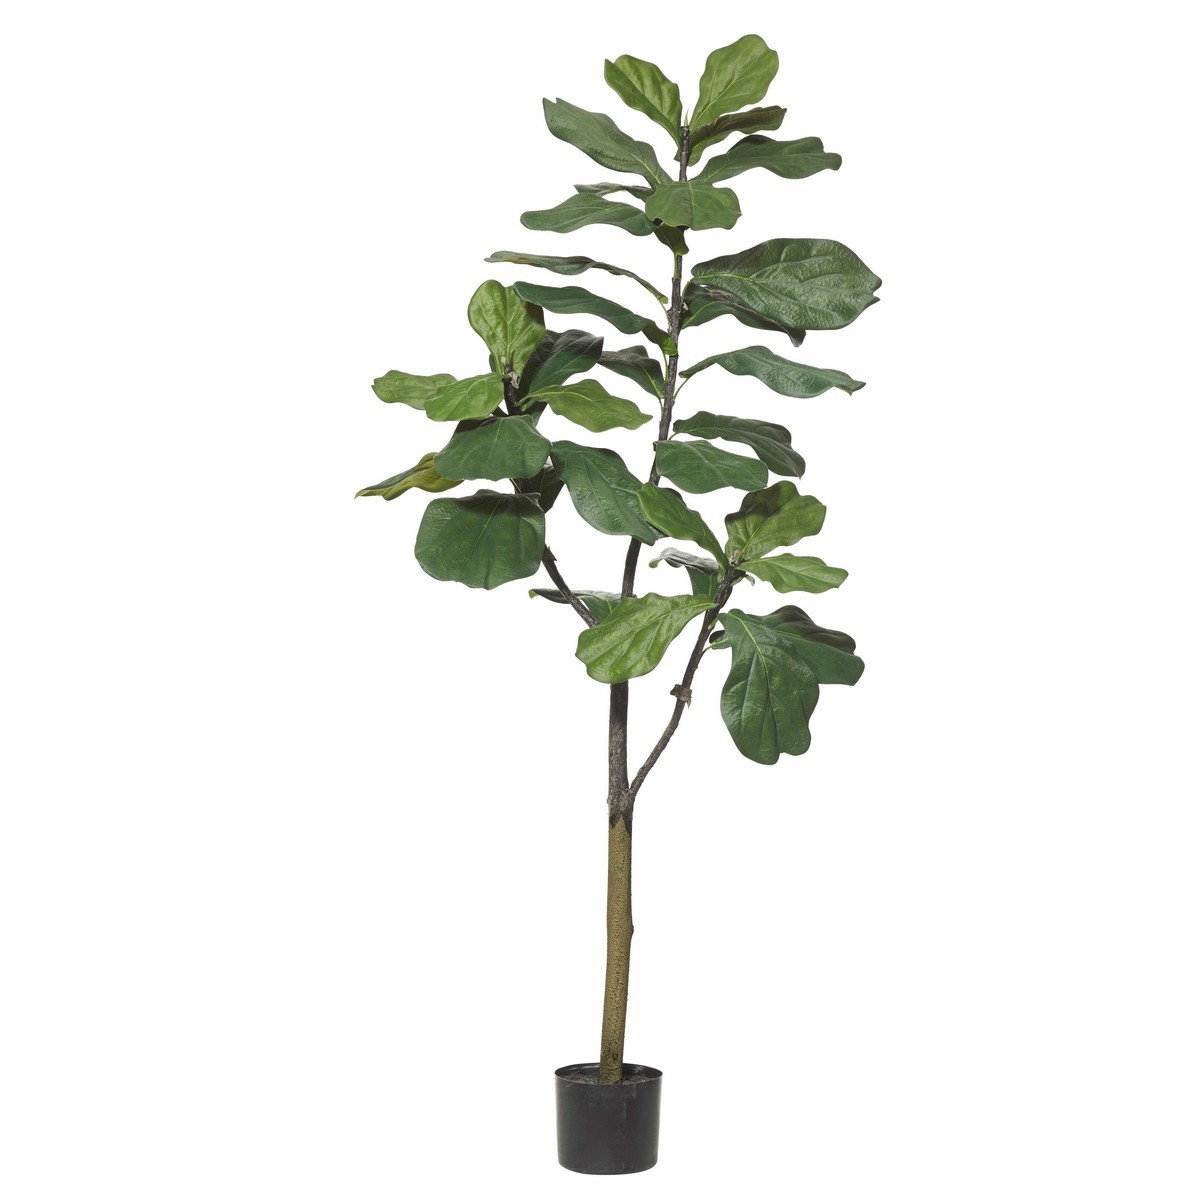 Potted Artificial Fiddle Leaf Fig Tree, Type B, 152cm